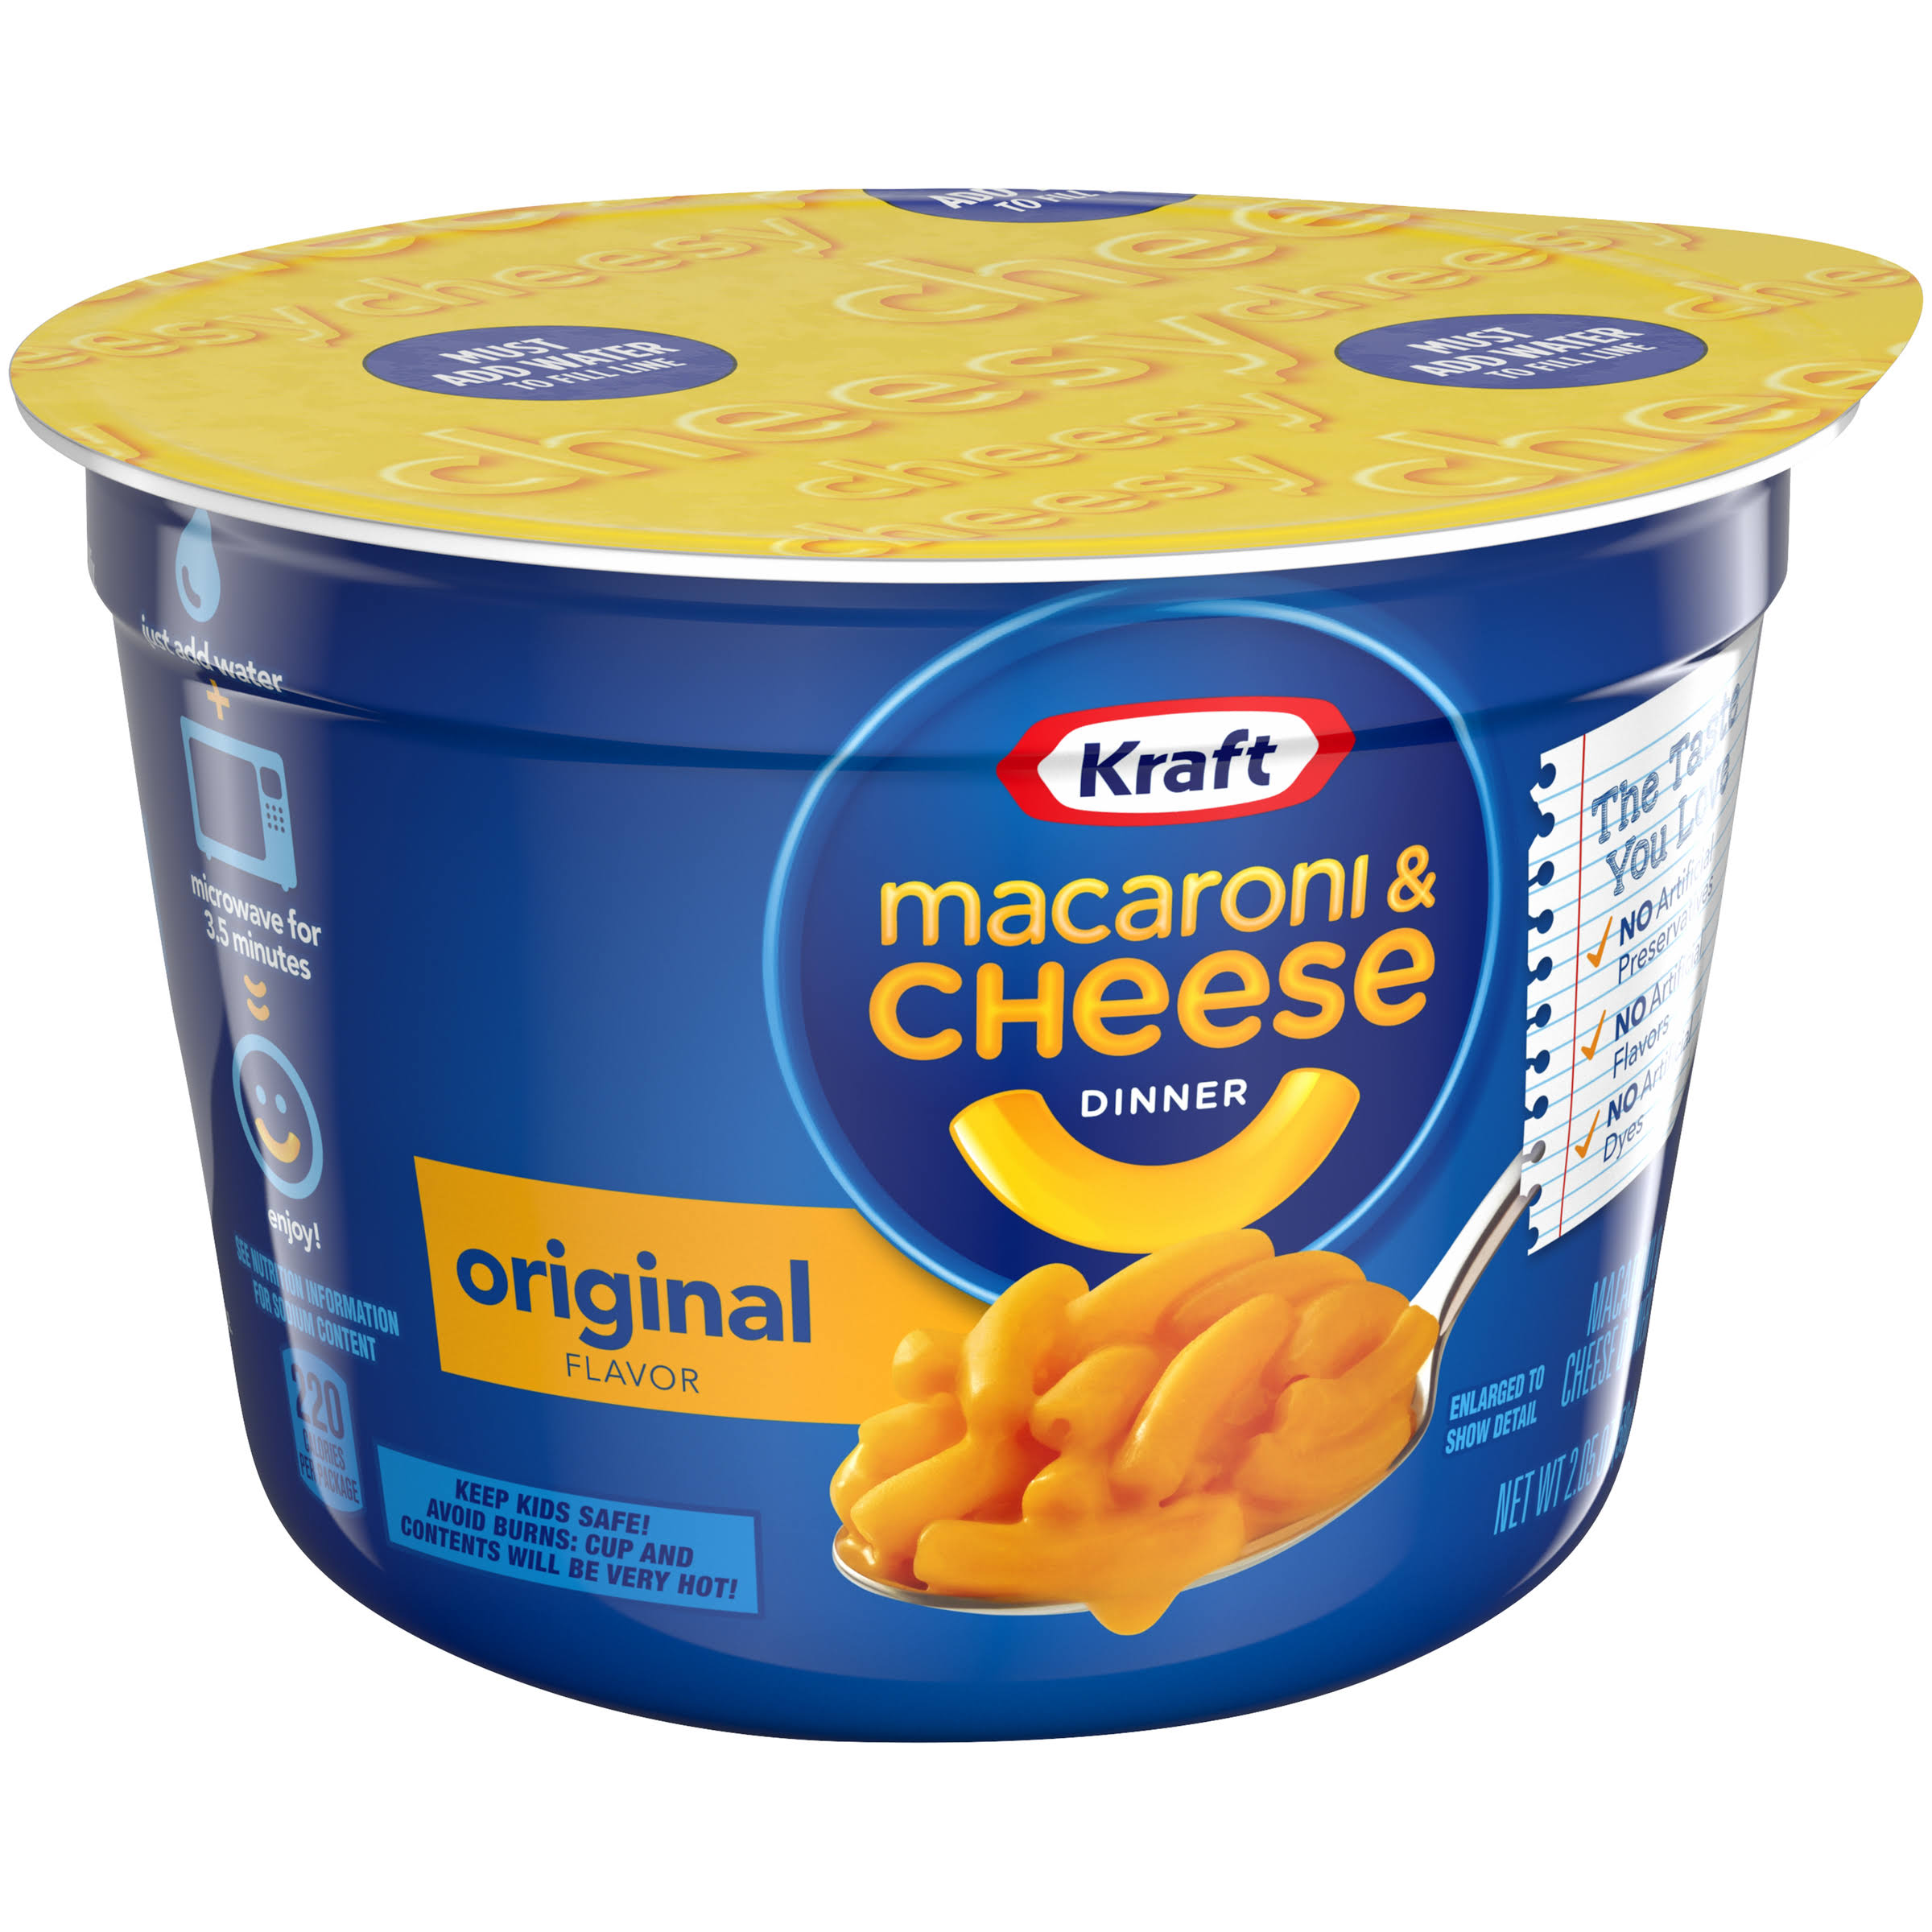 Kraft Macaroni & Cheese Dinner - Original Flavor, 58g